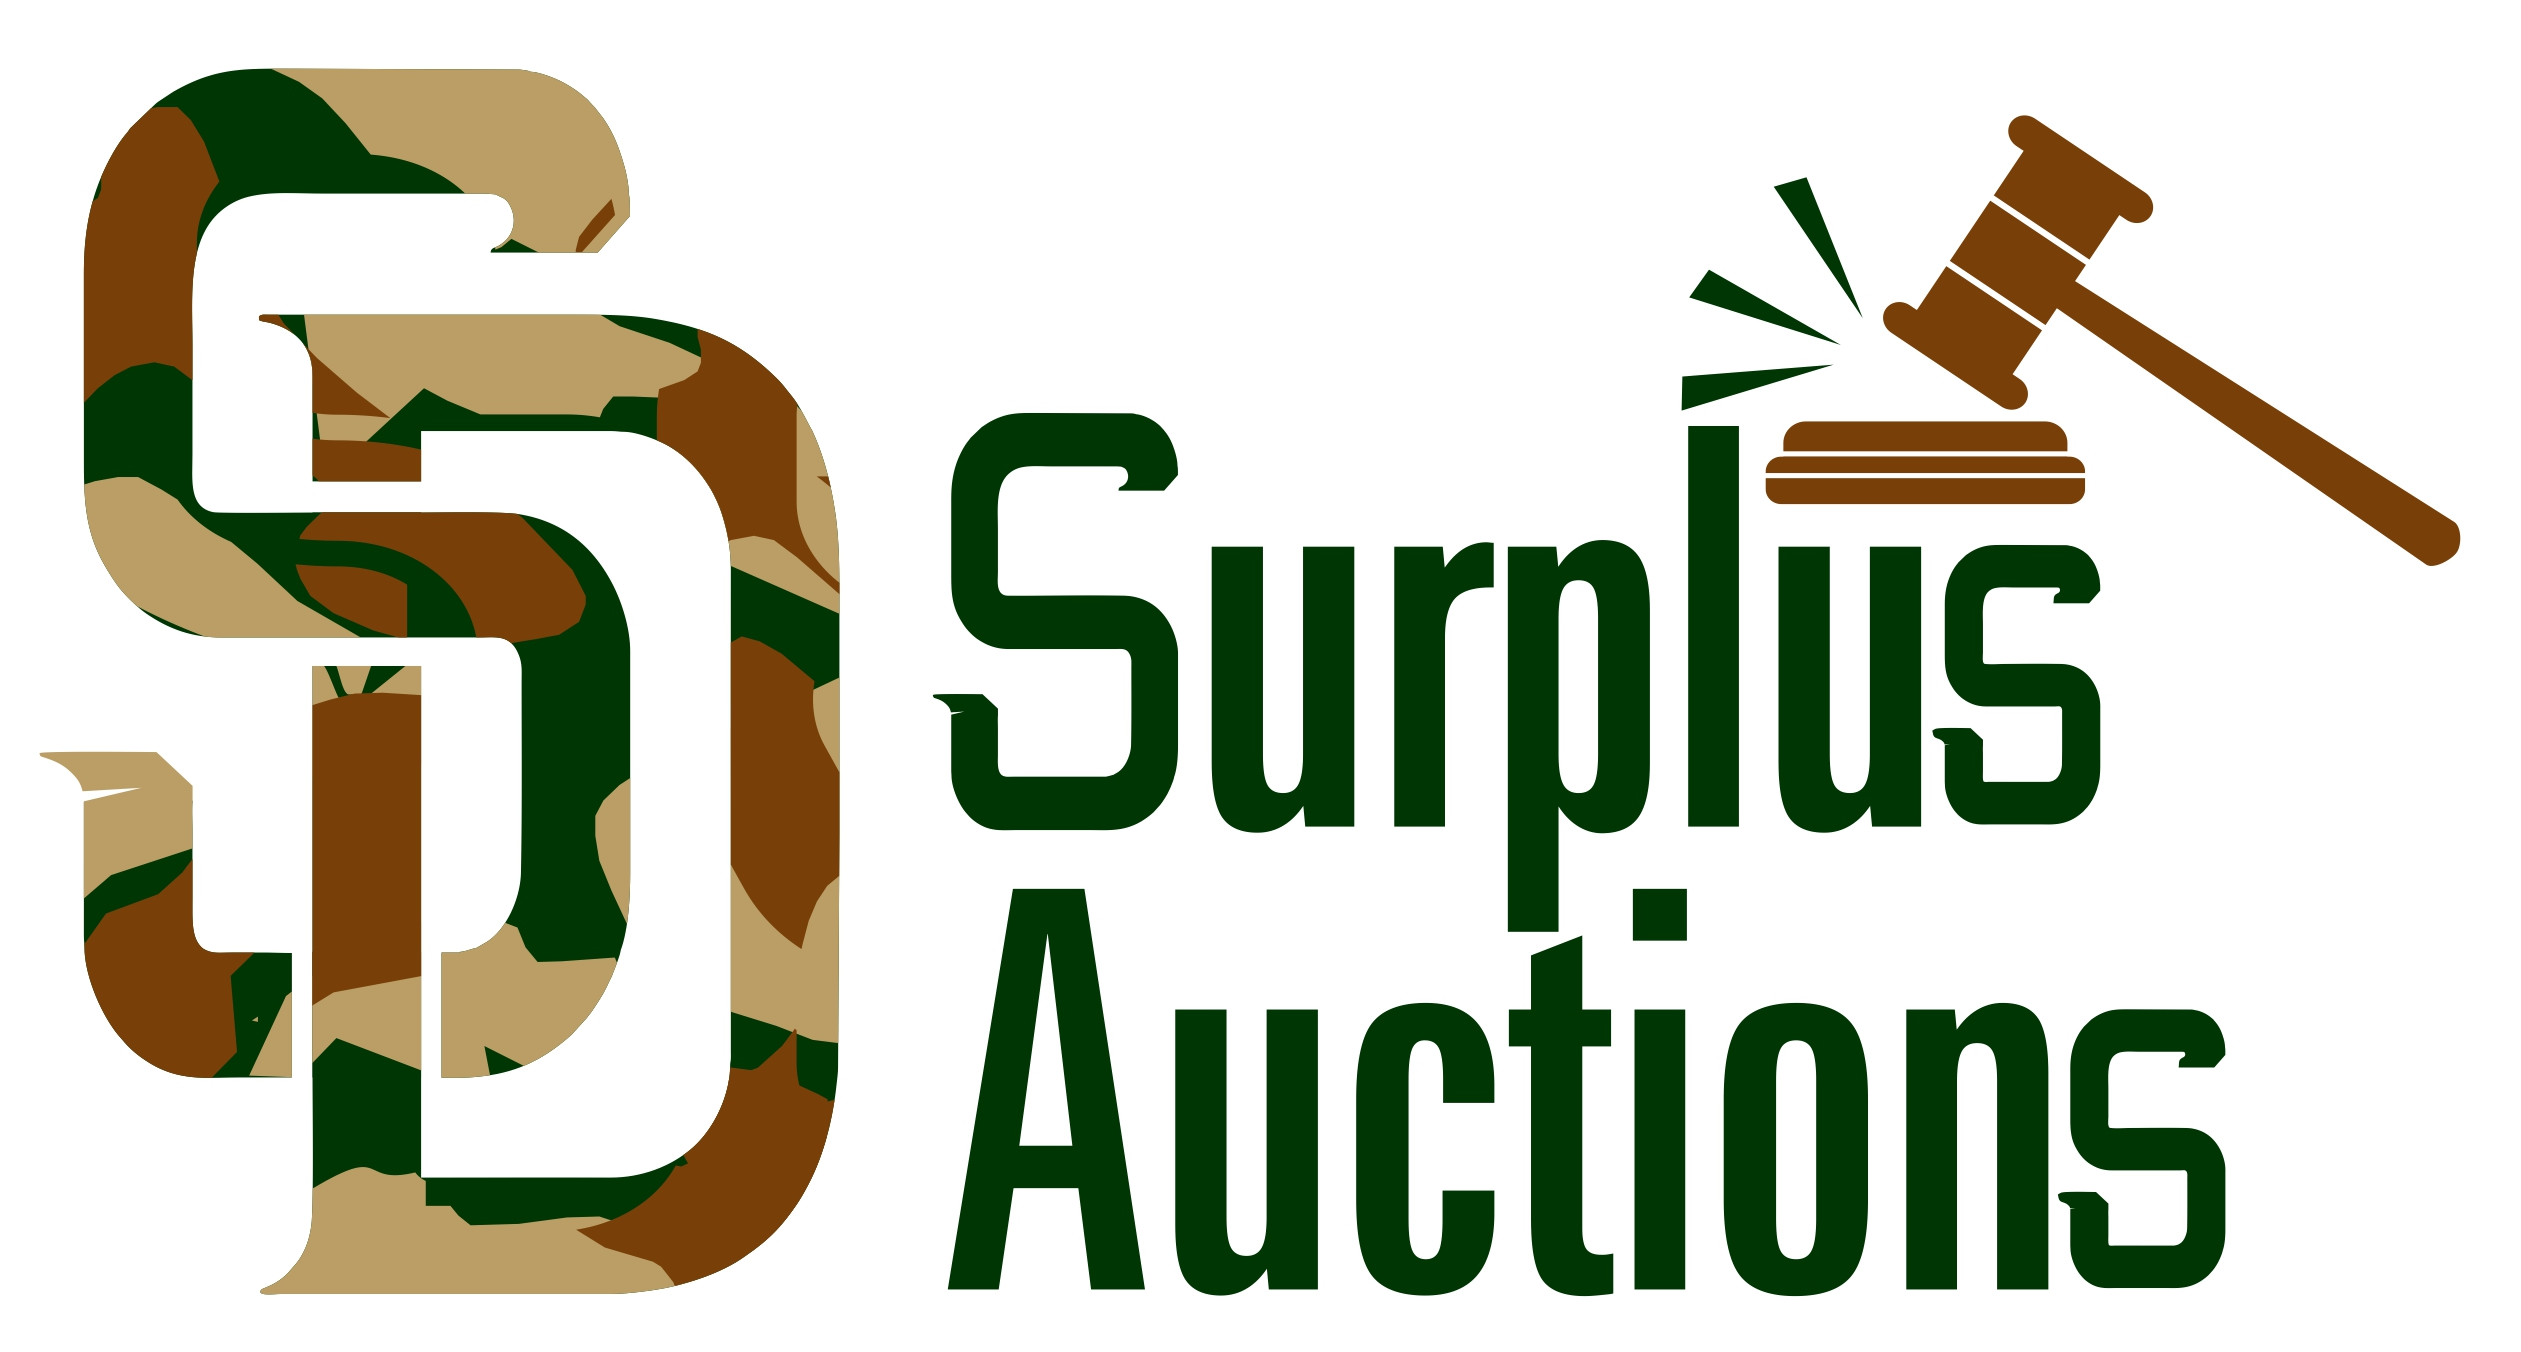 SD Surplus Auctions